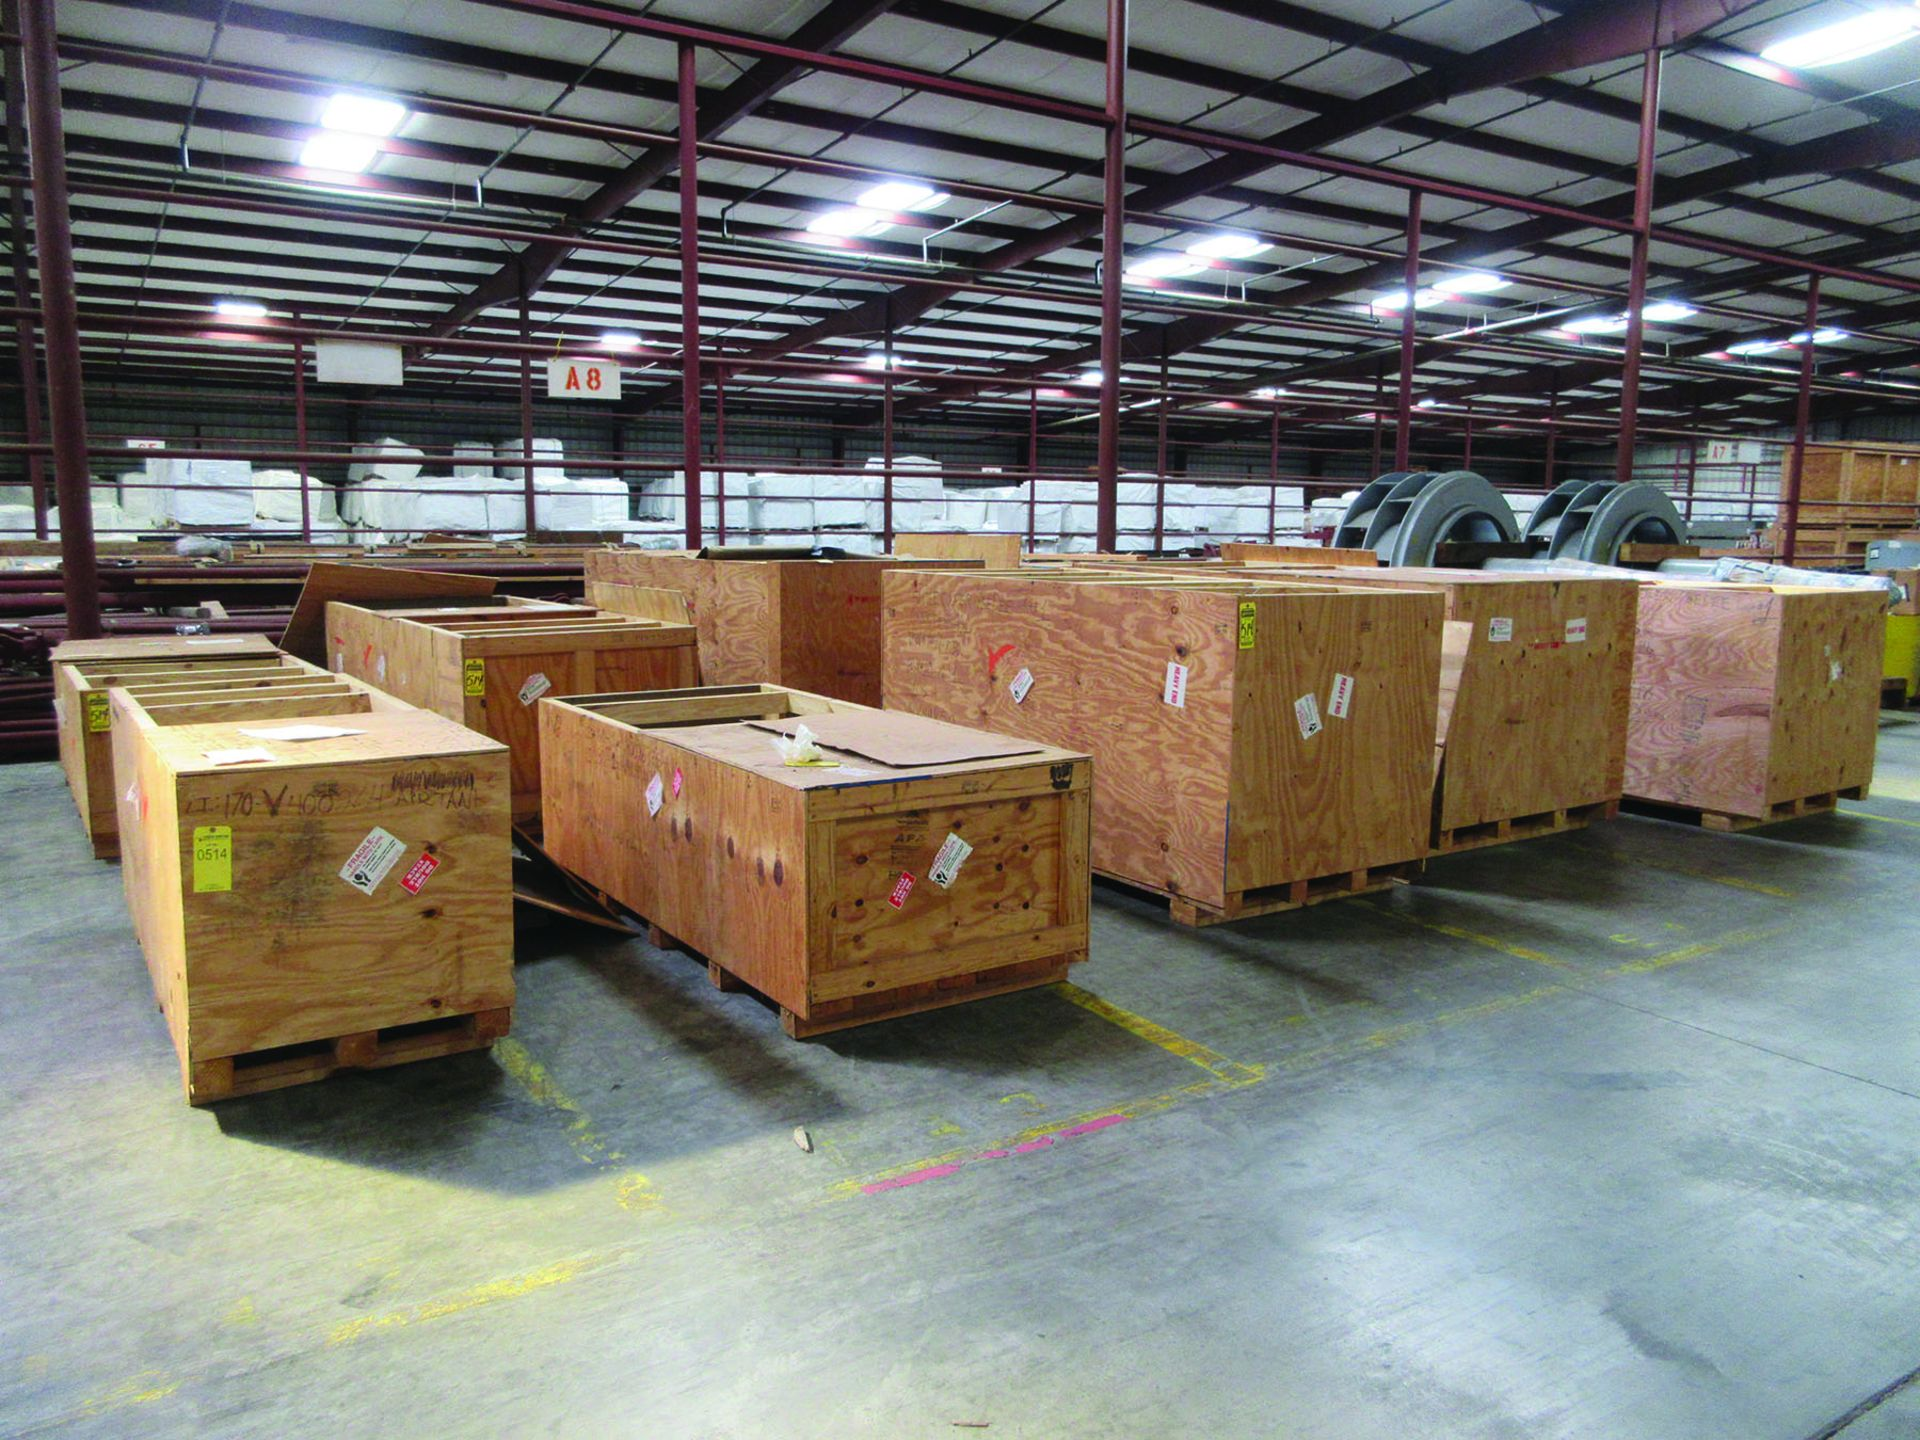 (10) CRATES CONTAINING: (4) 6'' VALVE ASSEMBLIES, (1) 3'' VALVE ASSEMBLY, (1) 8'' VALVE ASSEMBLY, (